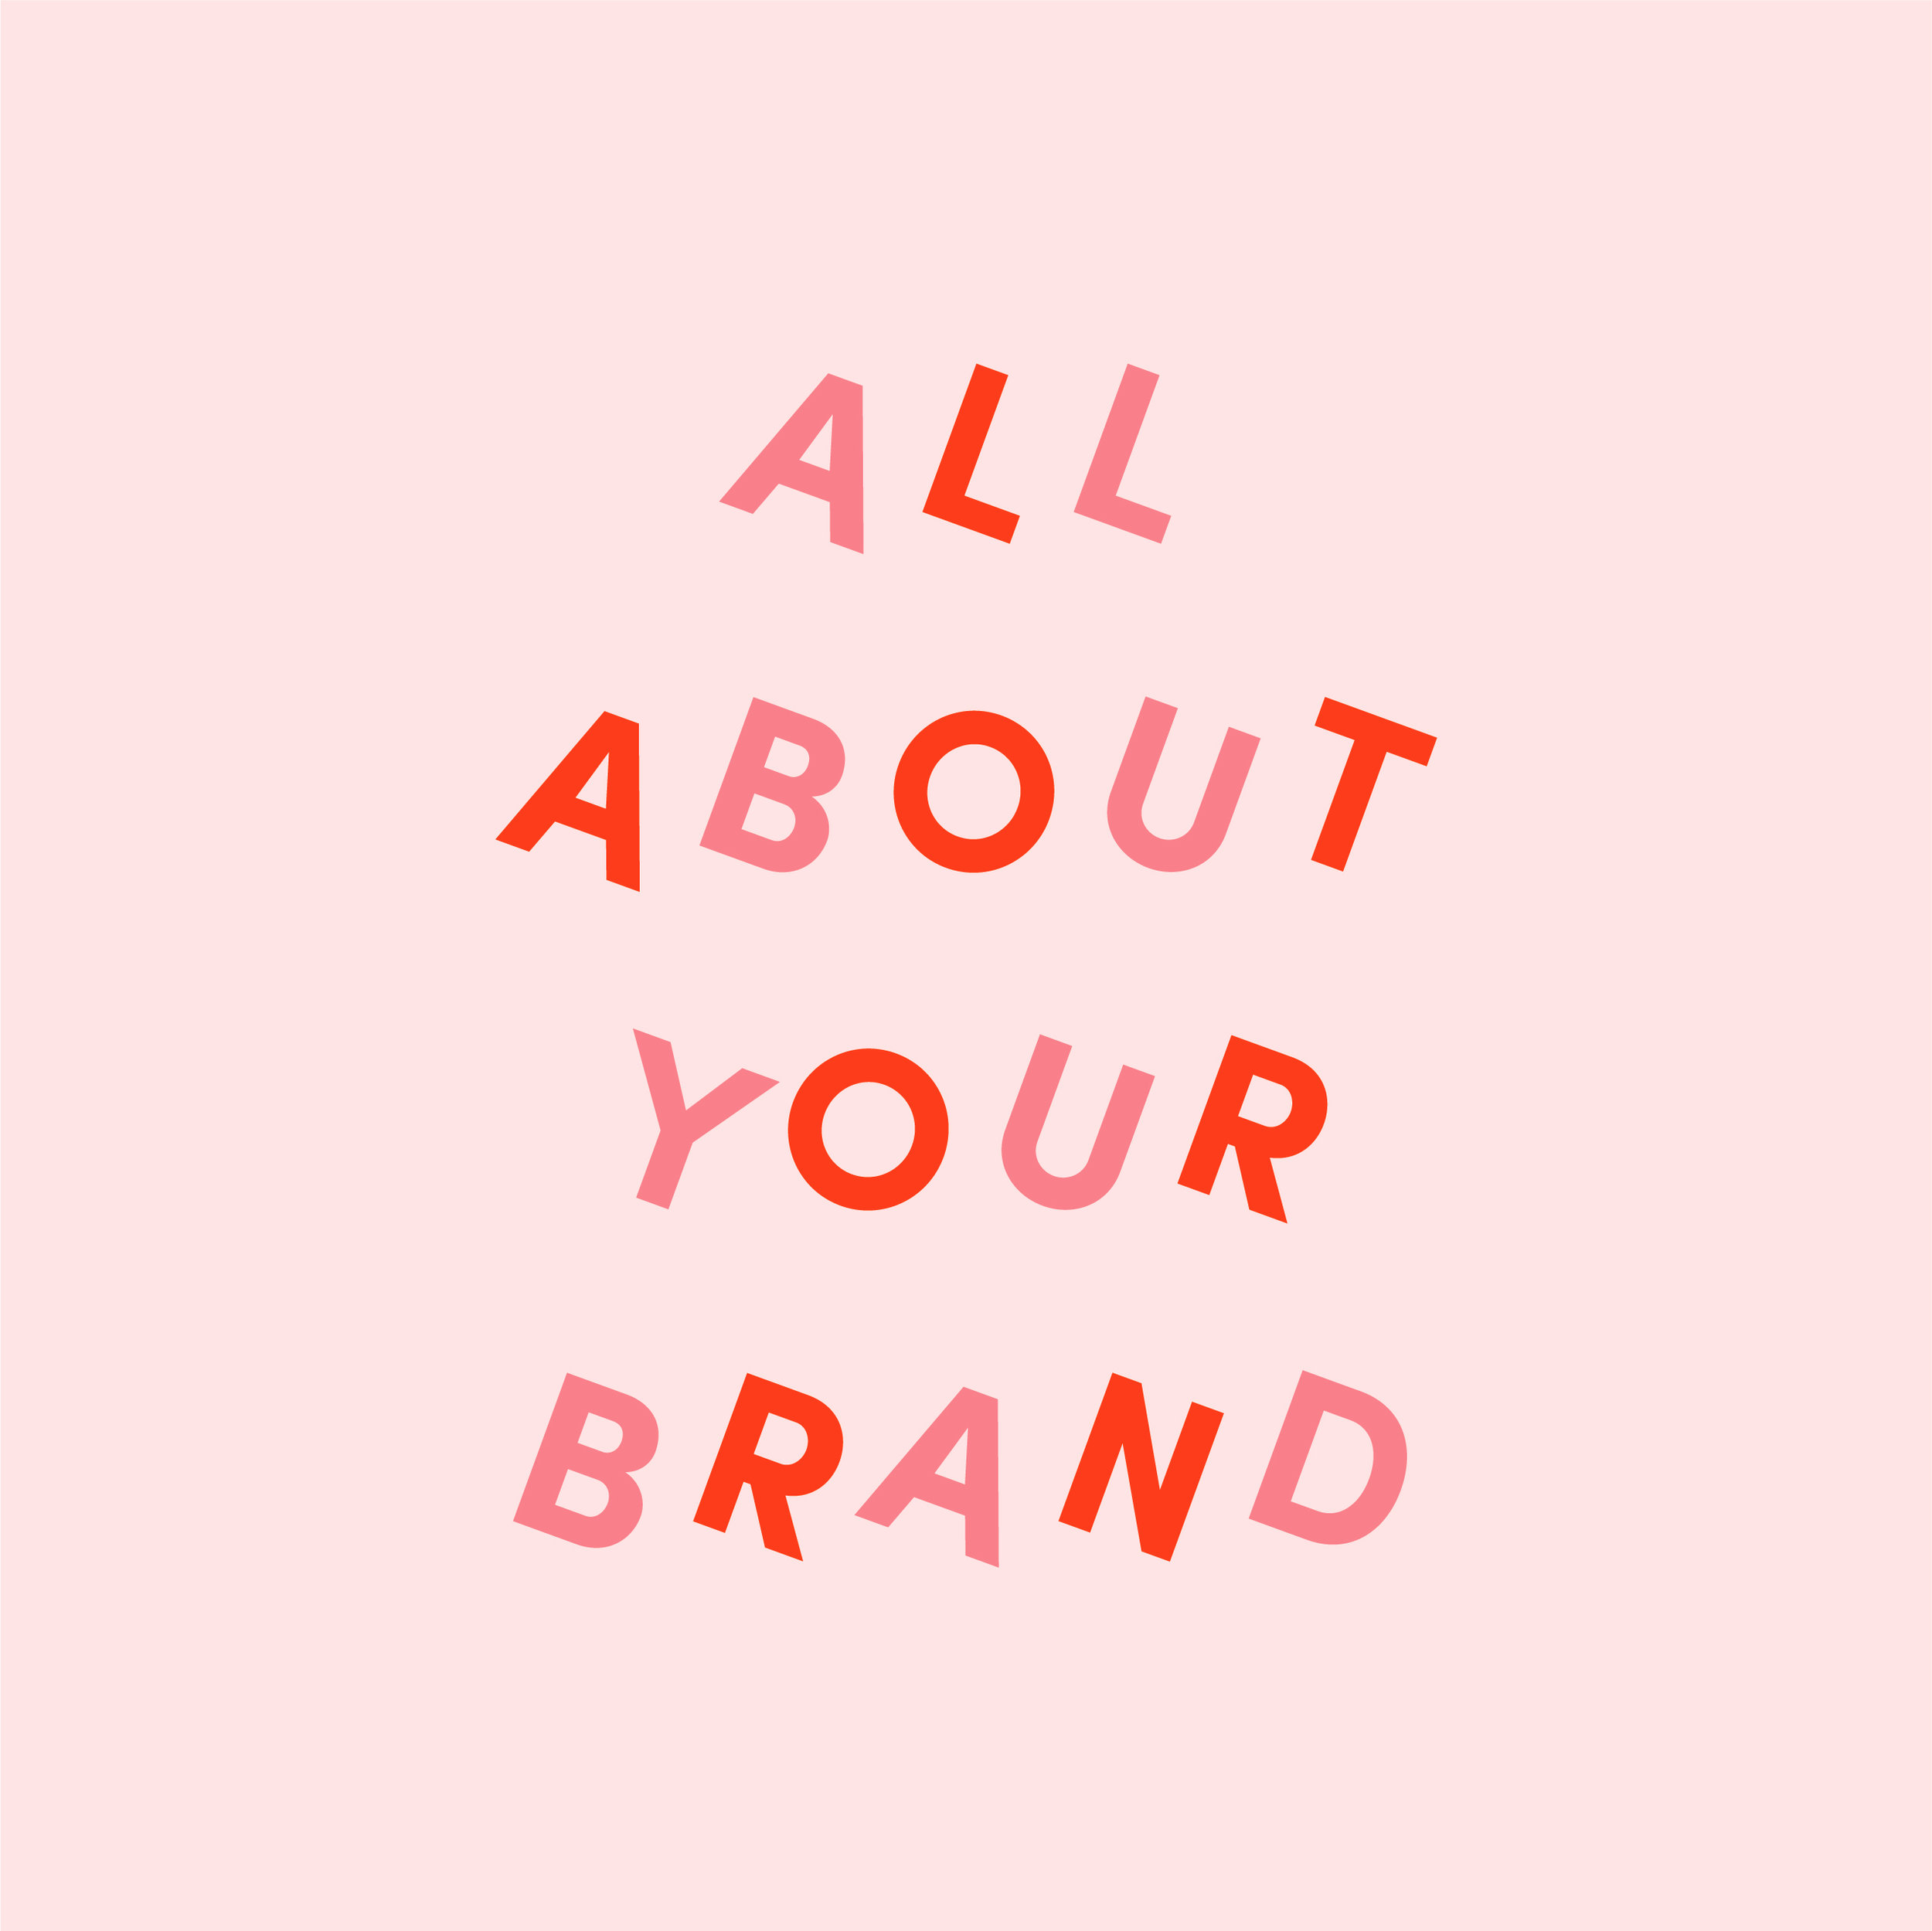 All about your brand-01-01-01.jpg